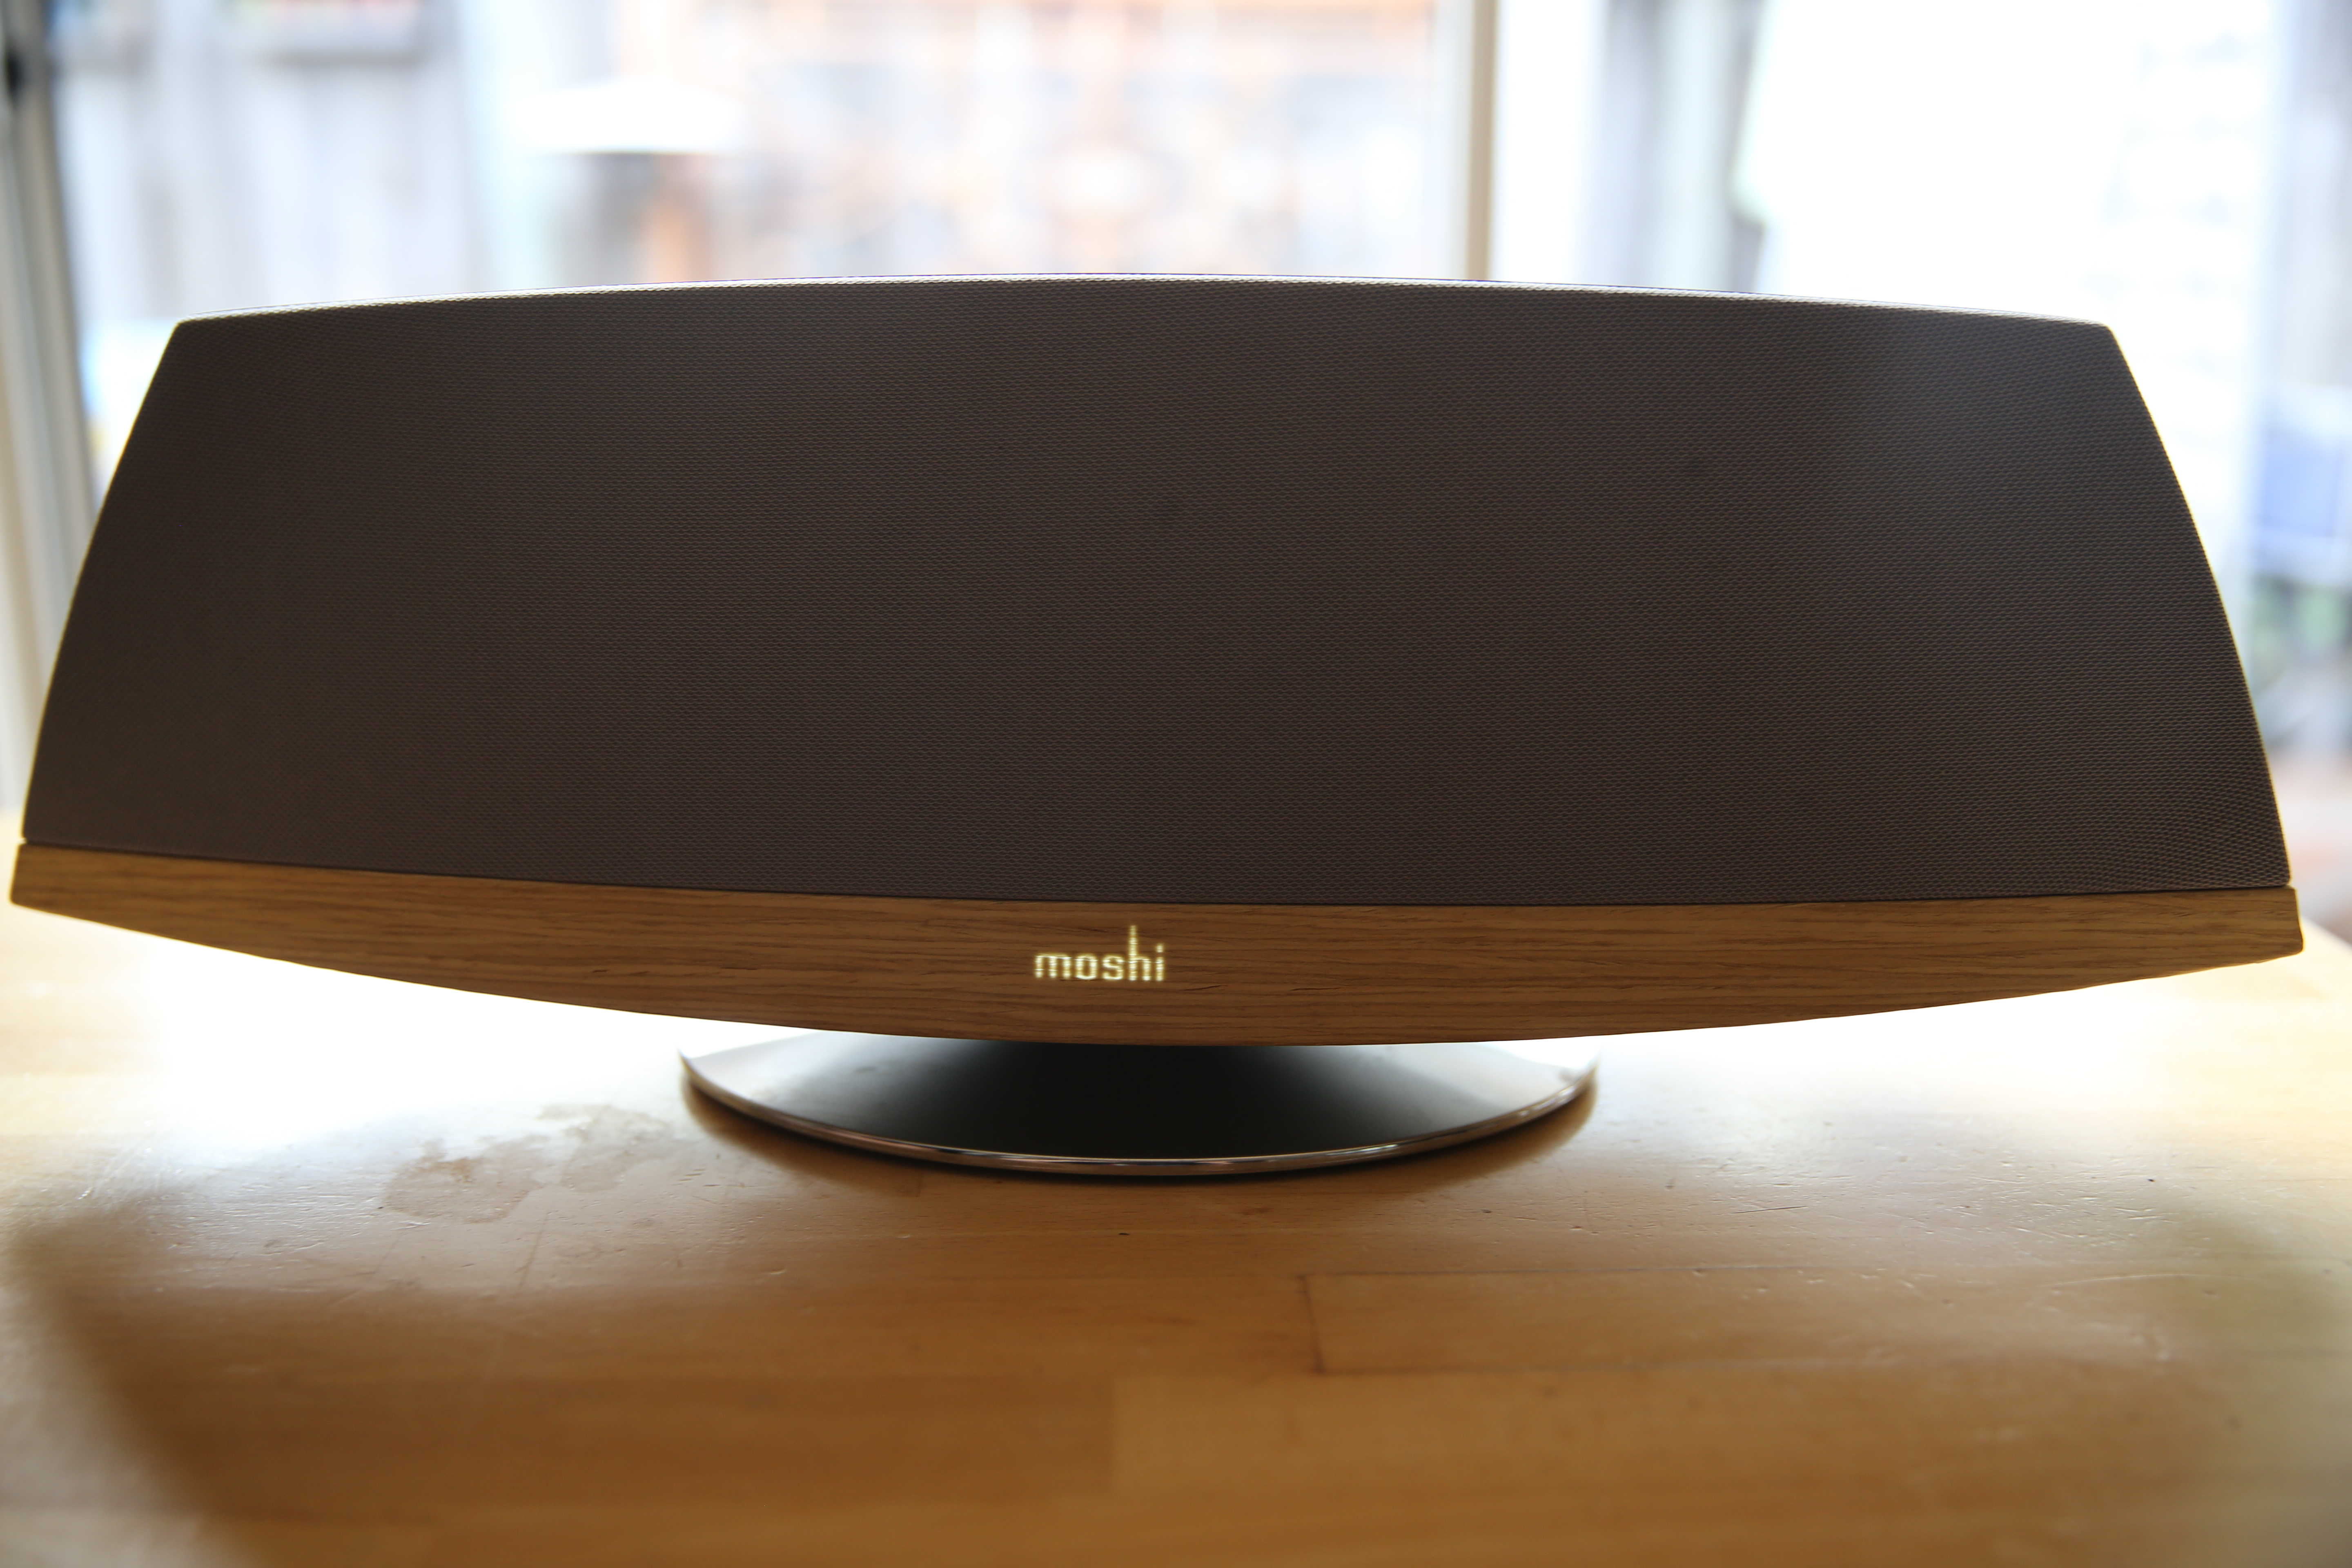 Moshi's Spatia Wireless AirPlay Speaker speaker has retro looks, but is thoroughly modern under the hood.